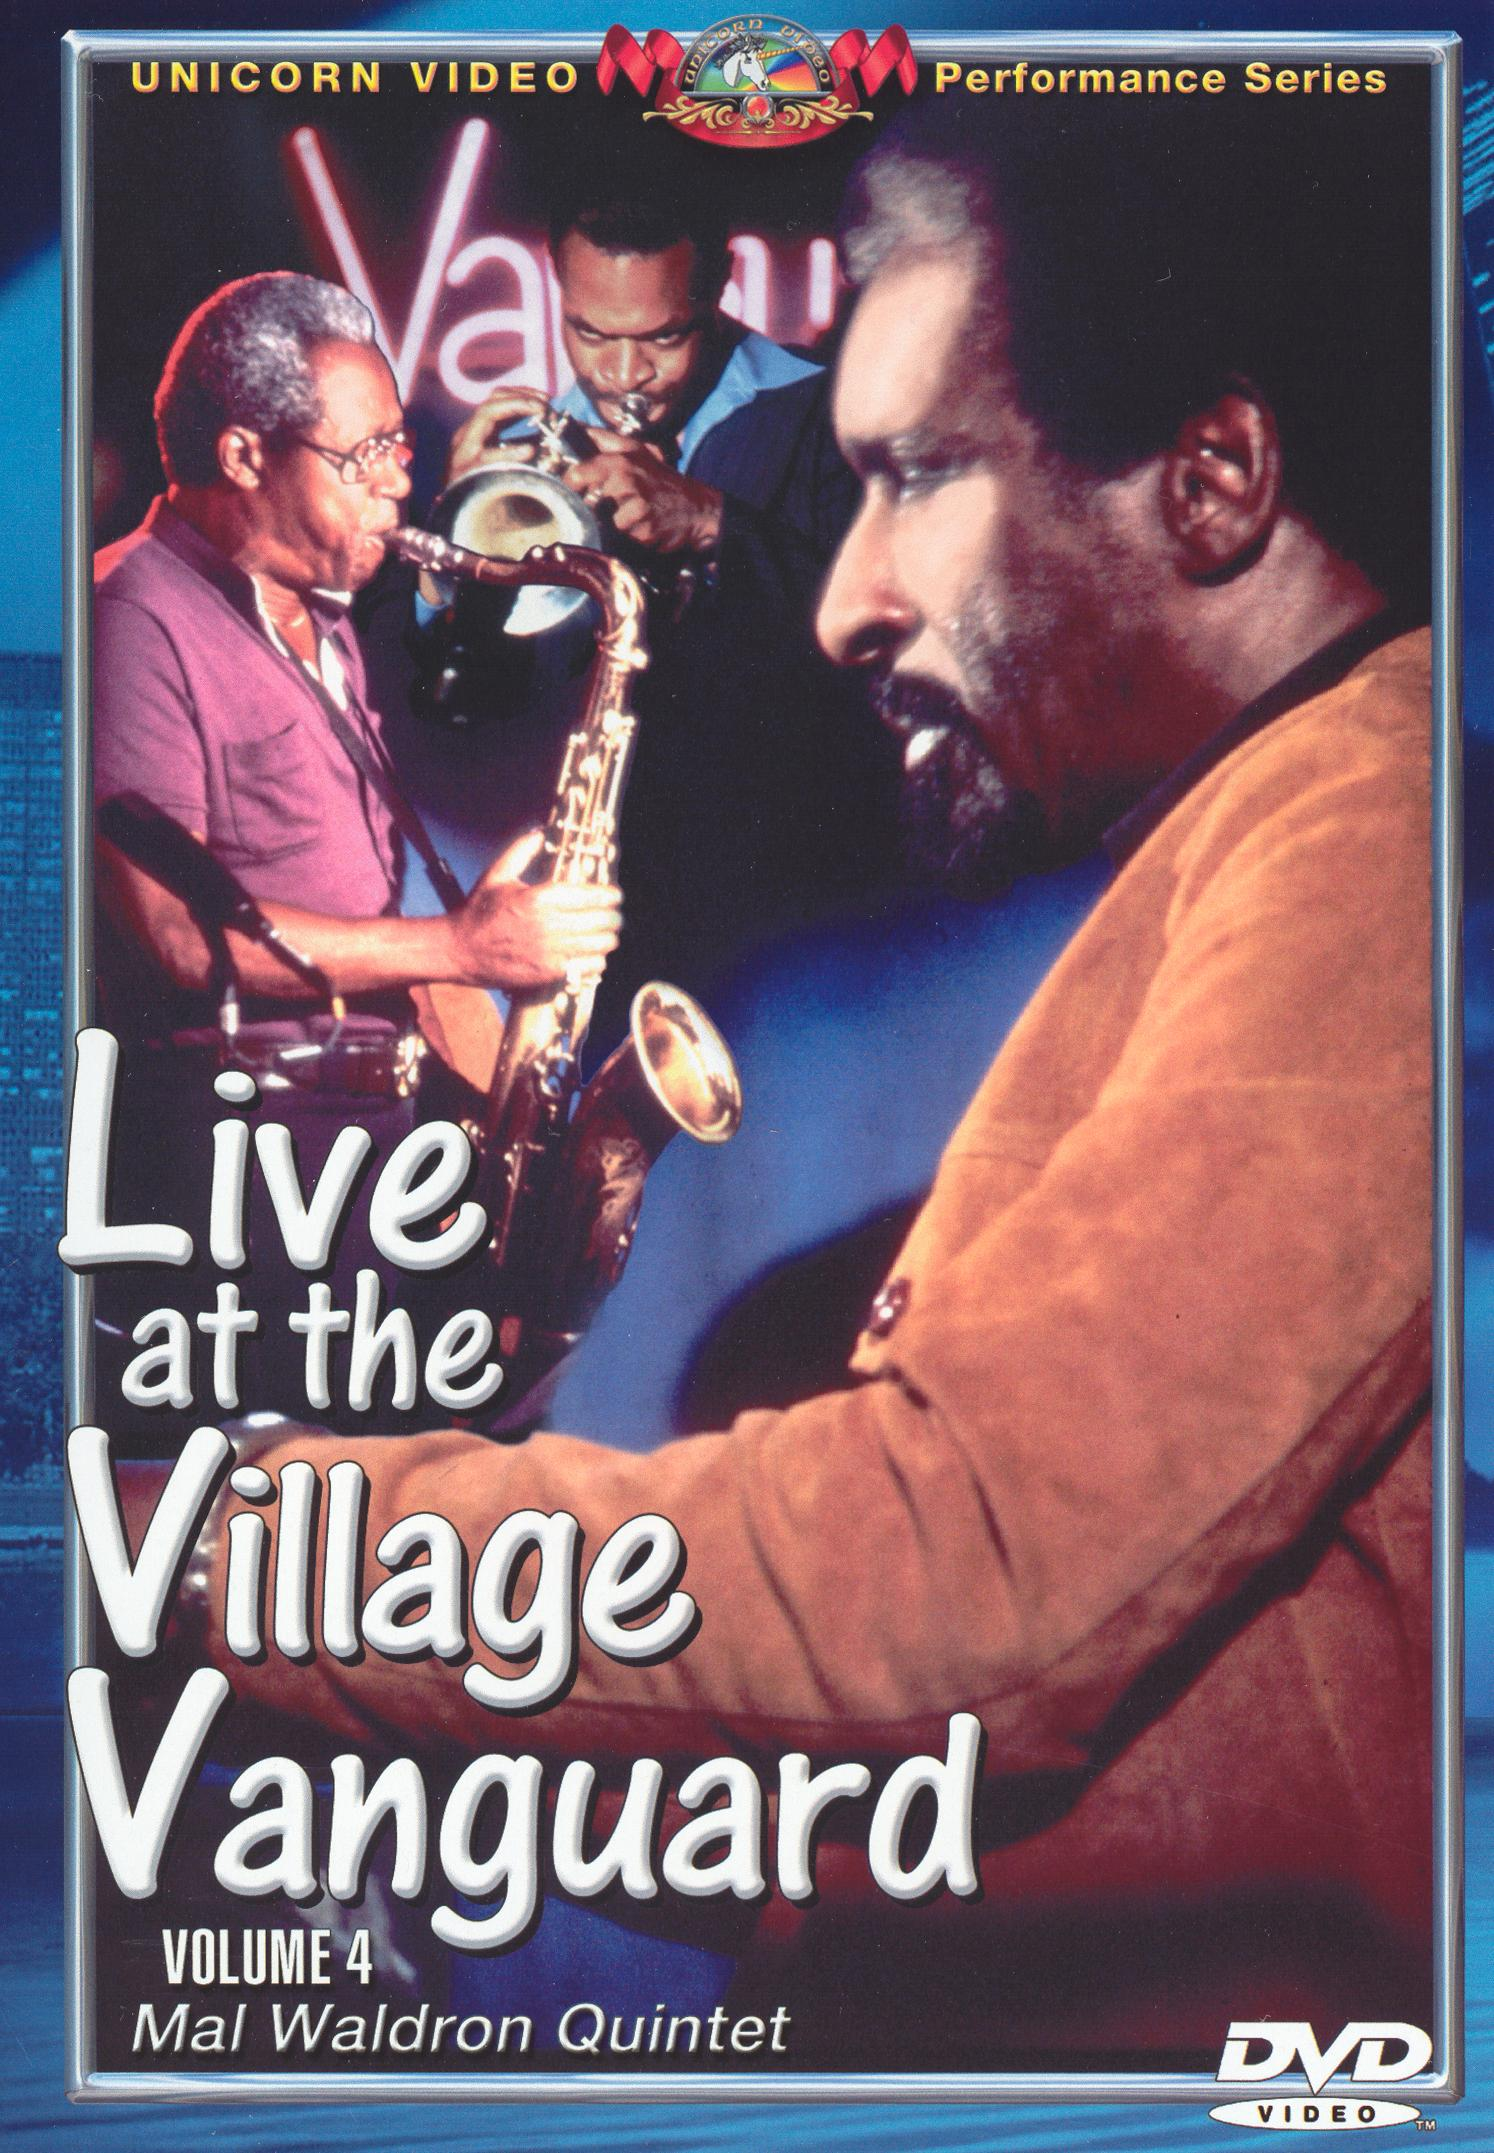 Live from the Village Vanguard, Vol. 4